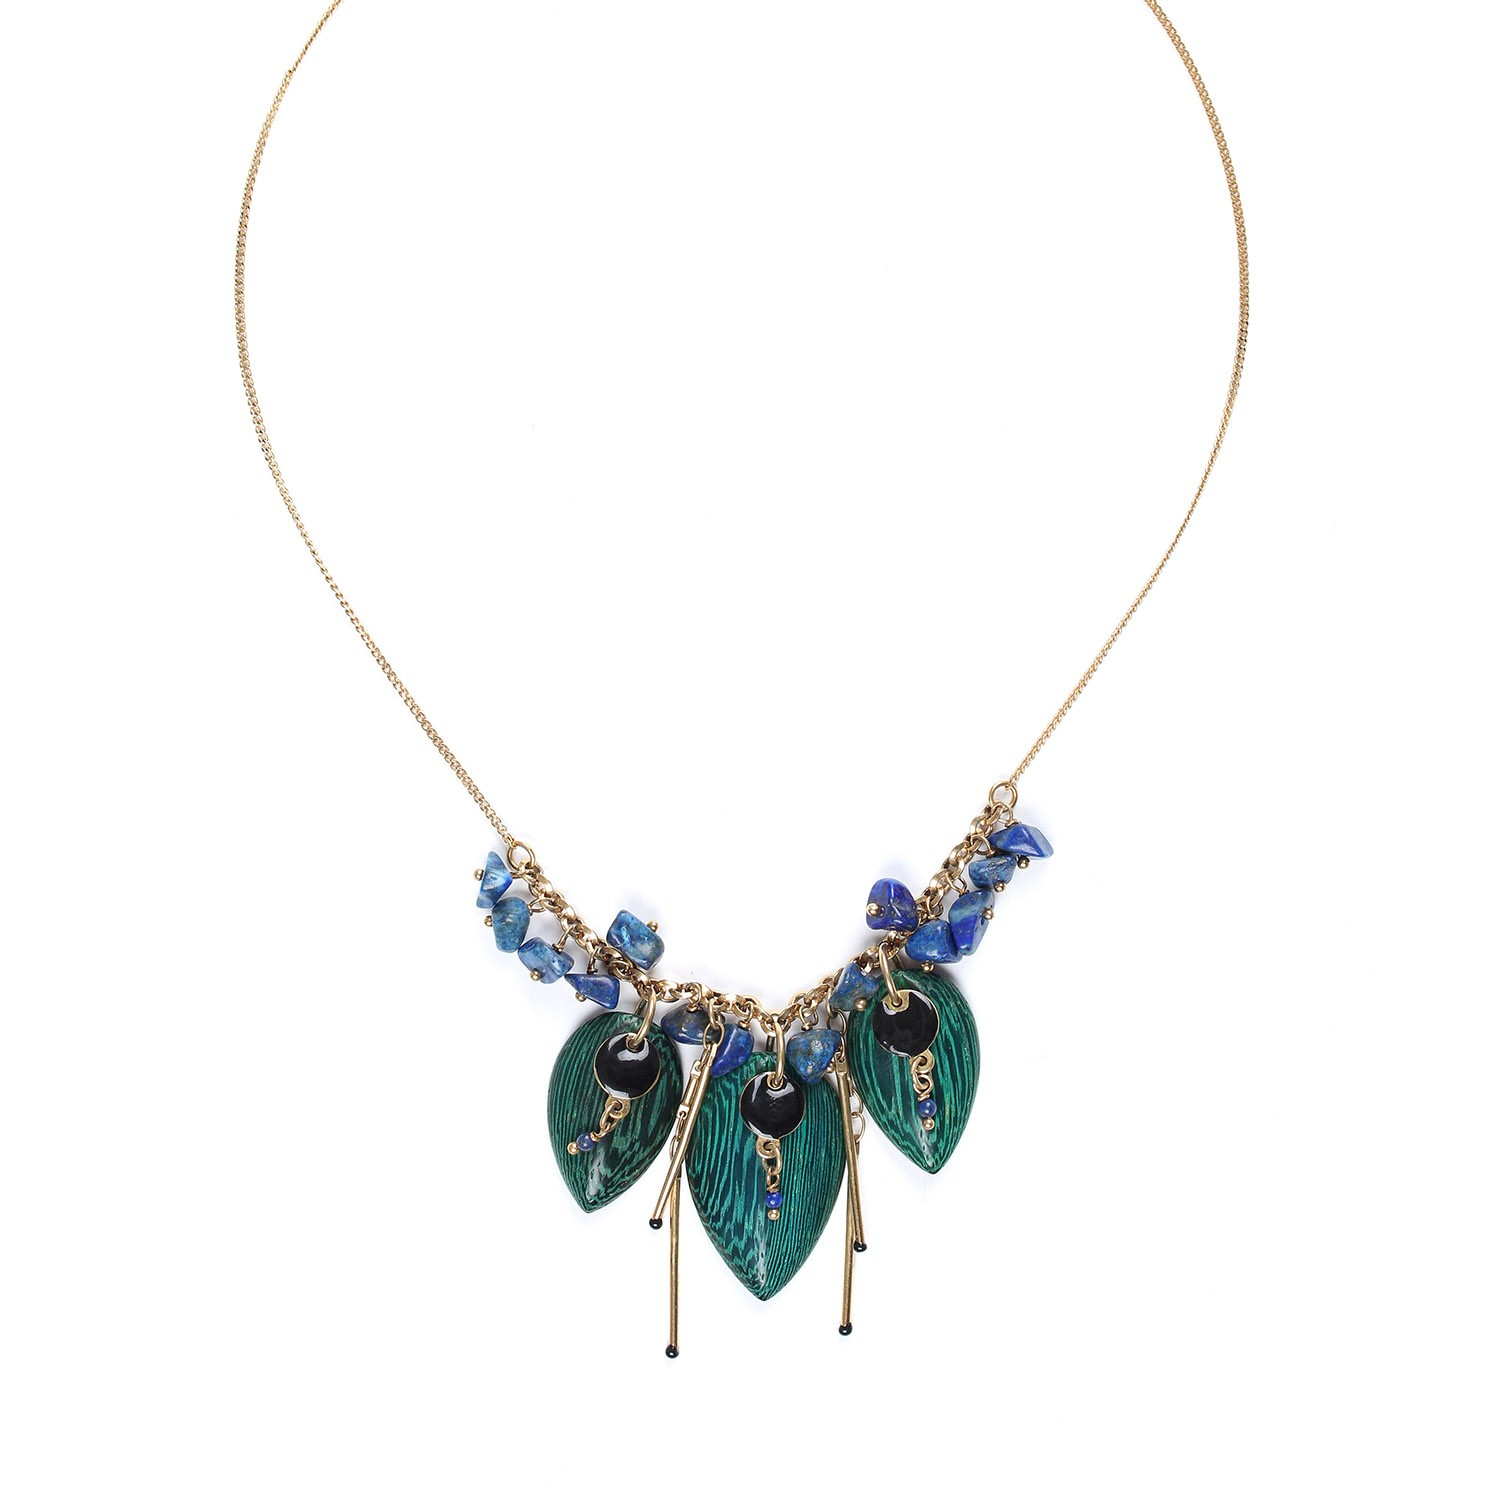 AGAPANTHE small necklace